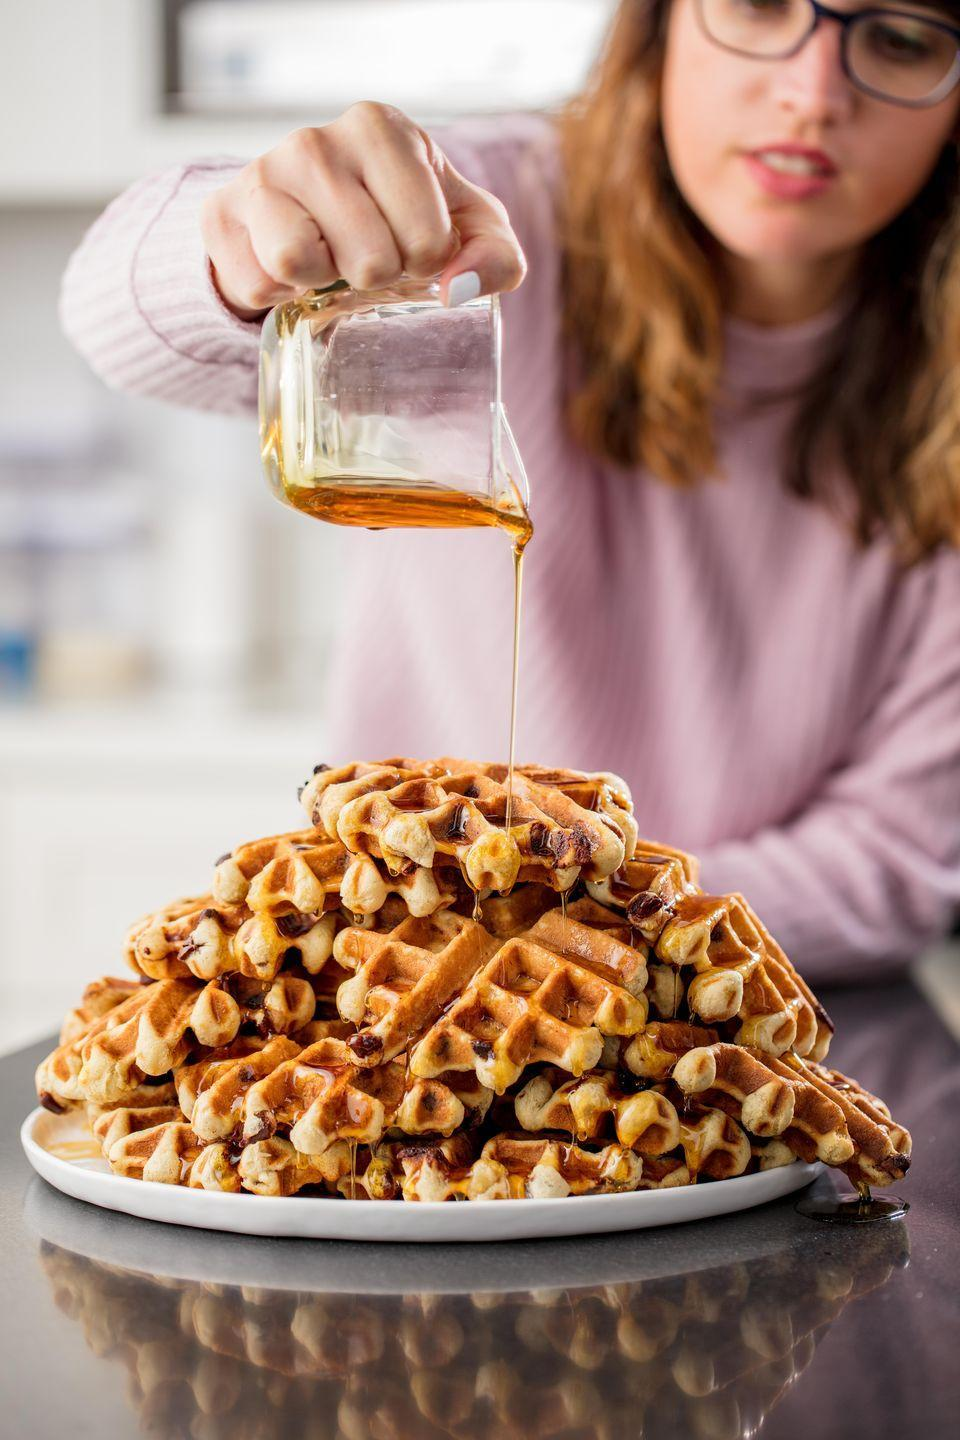 """<p>The second best duo of the day.</p><p>Get the recipe from <a href=""""https://www.delish.com/cooking/a22999009/banana-bread-waffles-recipe/"""" rel=""""nofollow noopener"""" target=""""_blank"""" data-ylk=""""slk:Delish"""" class=""""link rapid-noclick-resp"""">Delish</a>.</p>"""